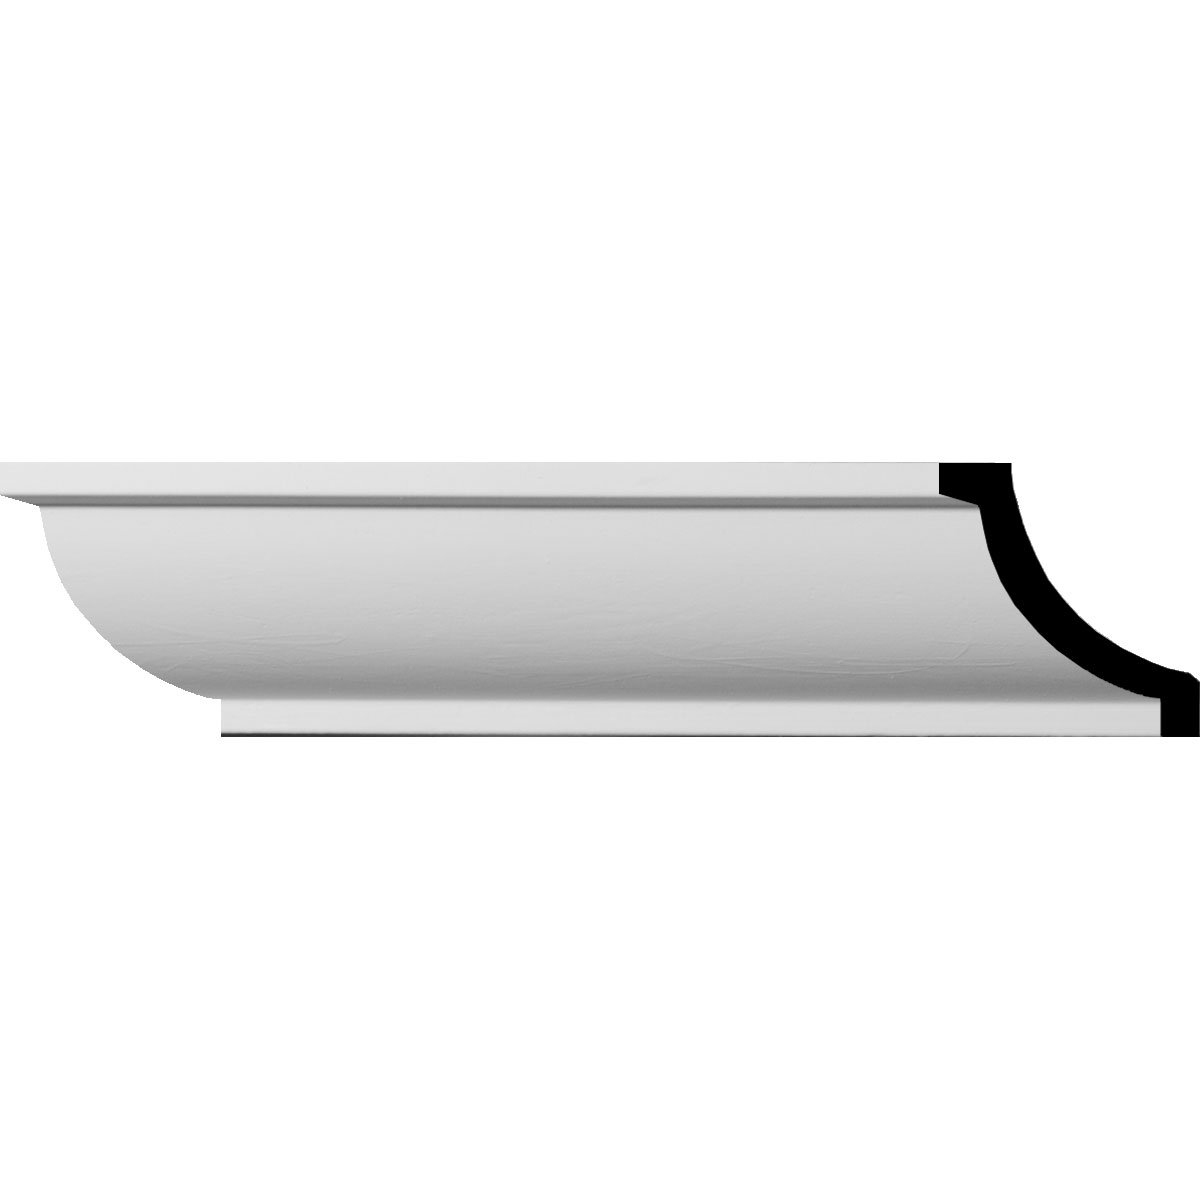 Ekena Millwork MLD01X01X02AS-CASE-2 1-1//2 H x 1-1//2 P x 2-1//8 F x 96 L Ashford Smooth Mini Crown Molding 2-Pack